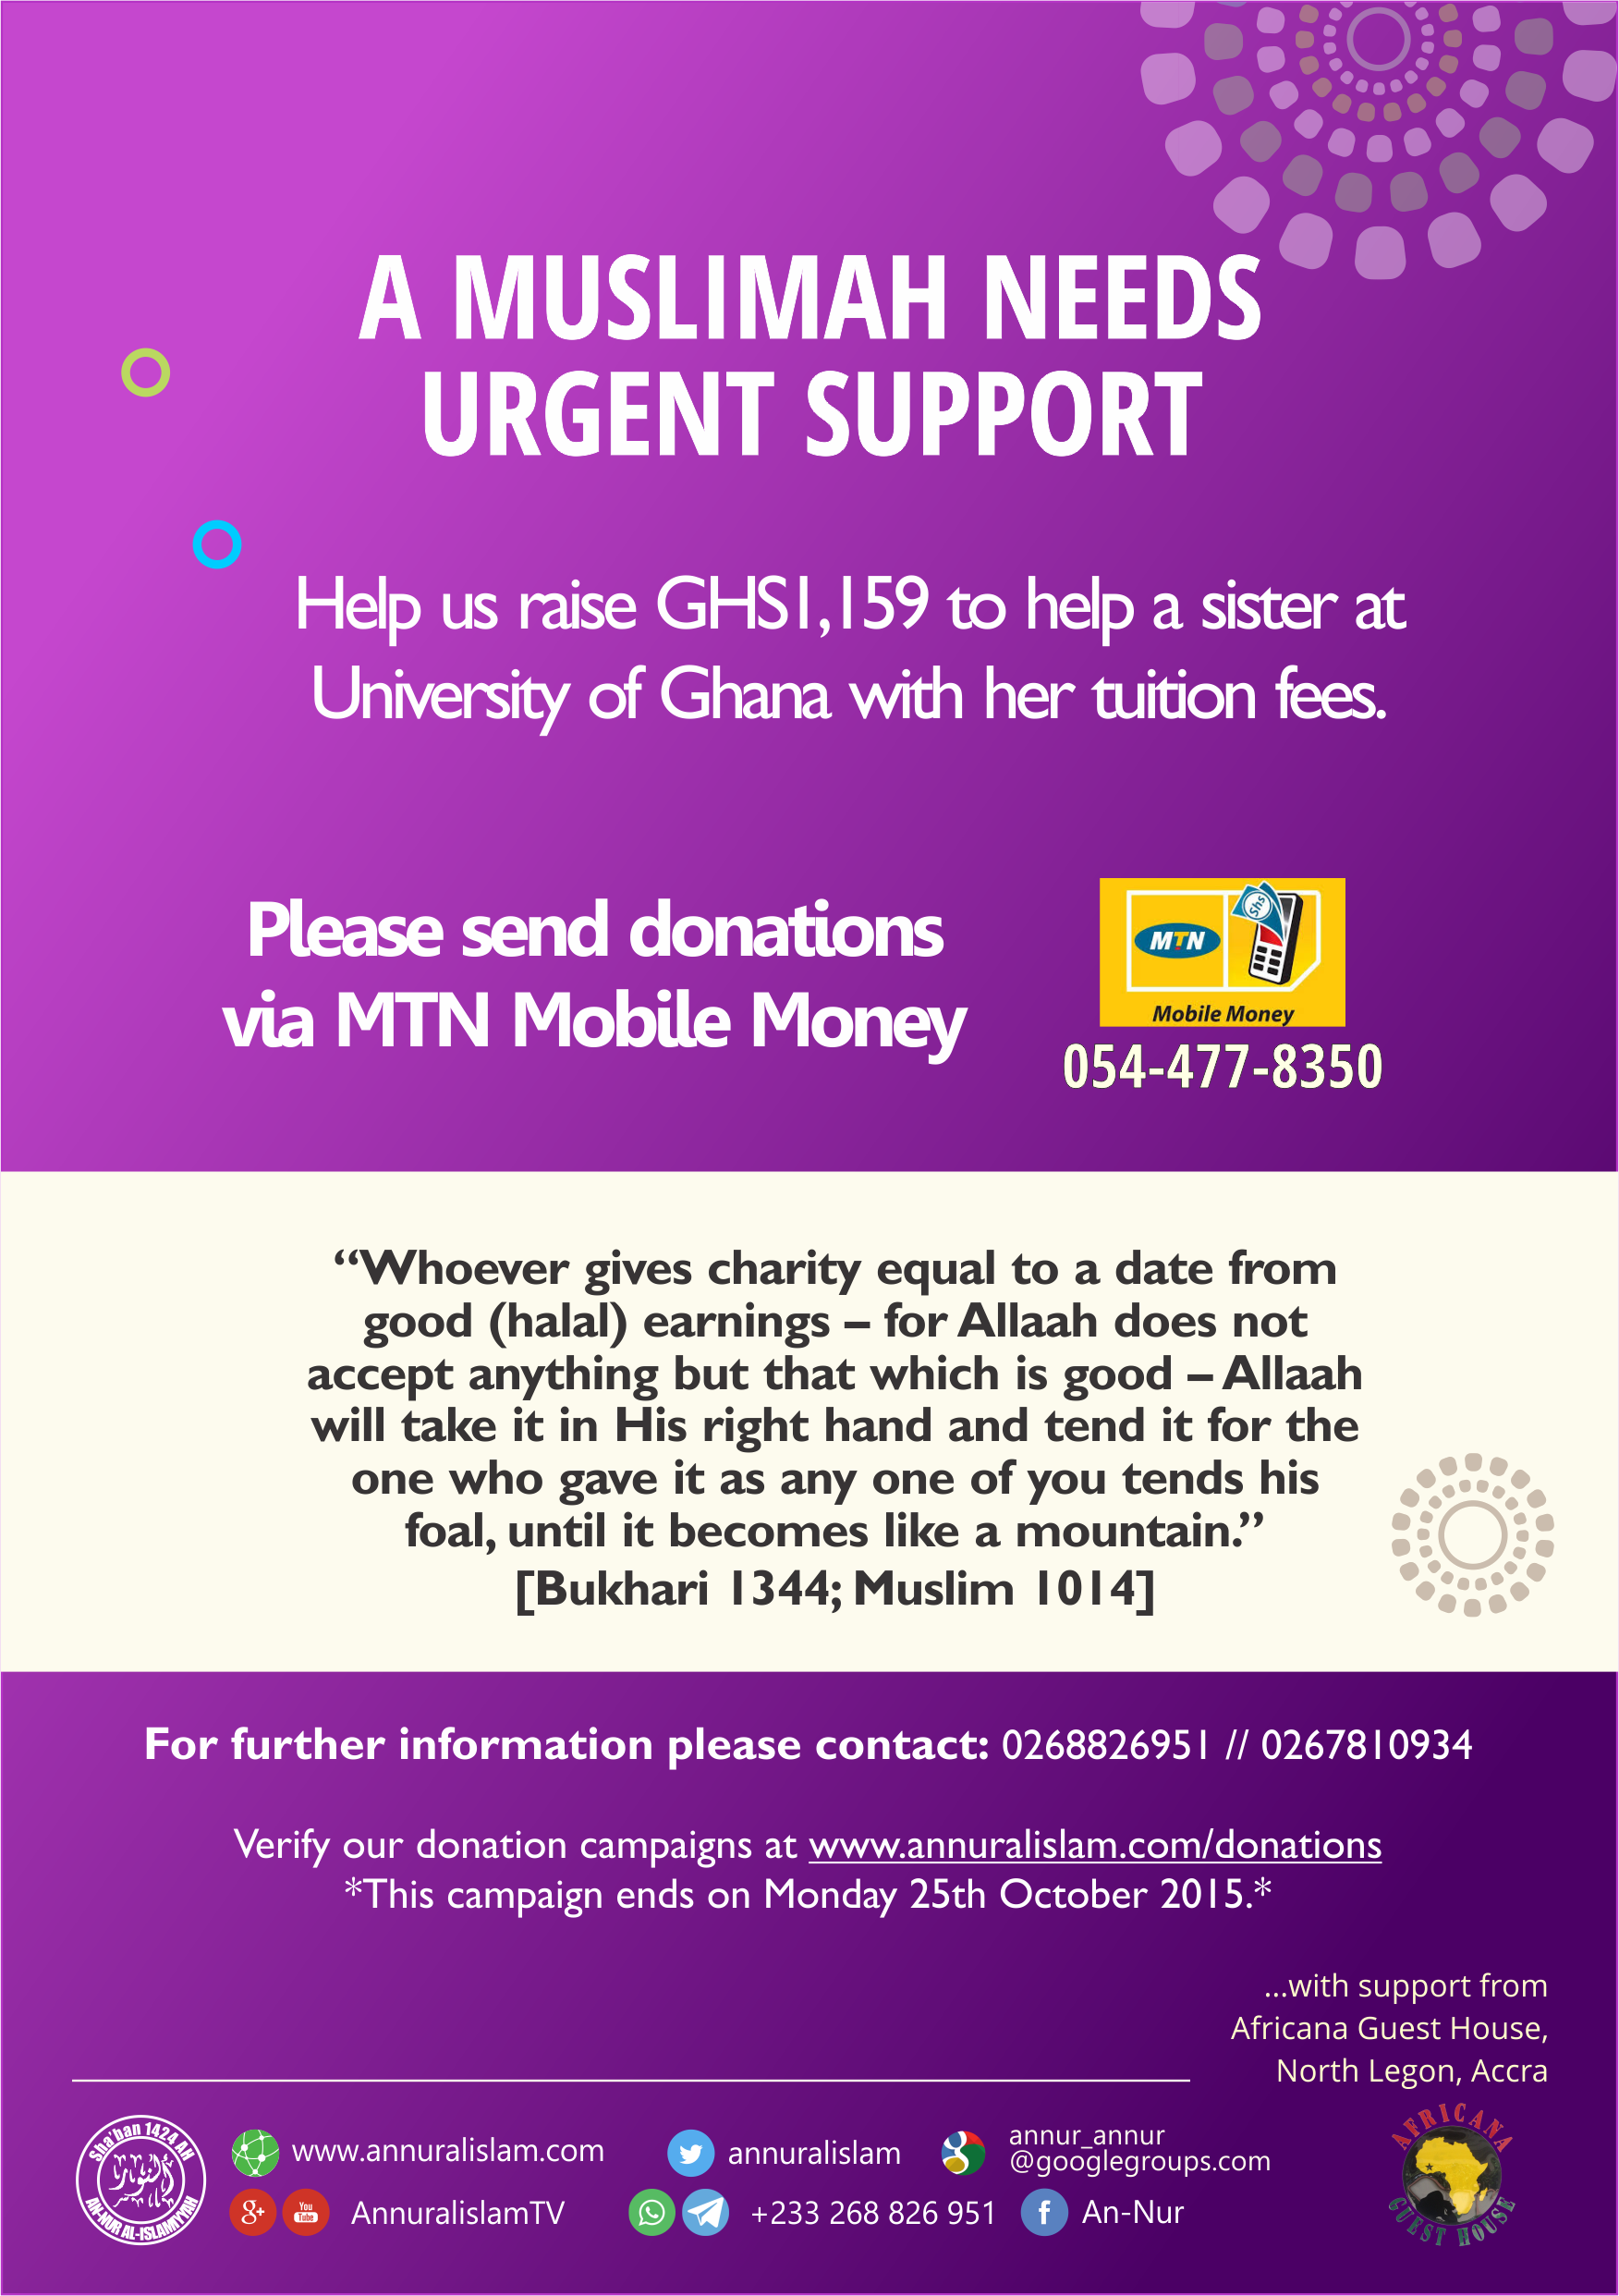 Another Muslimah in need of support